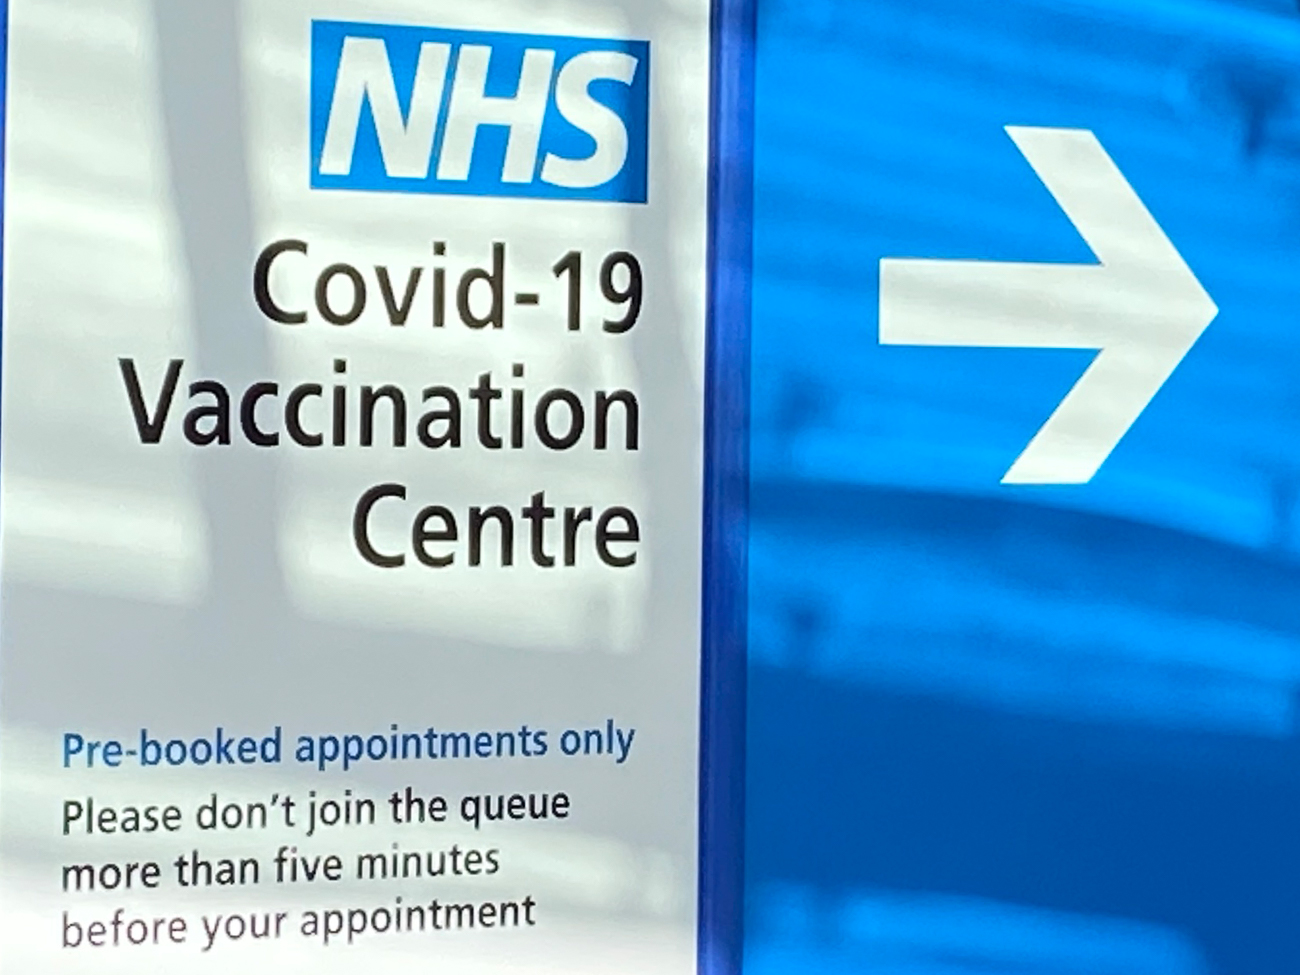 NHS Vaccination Centre wayfinding